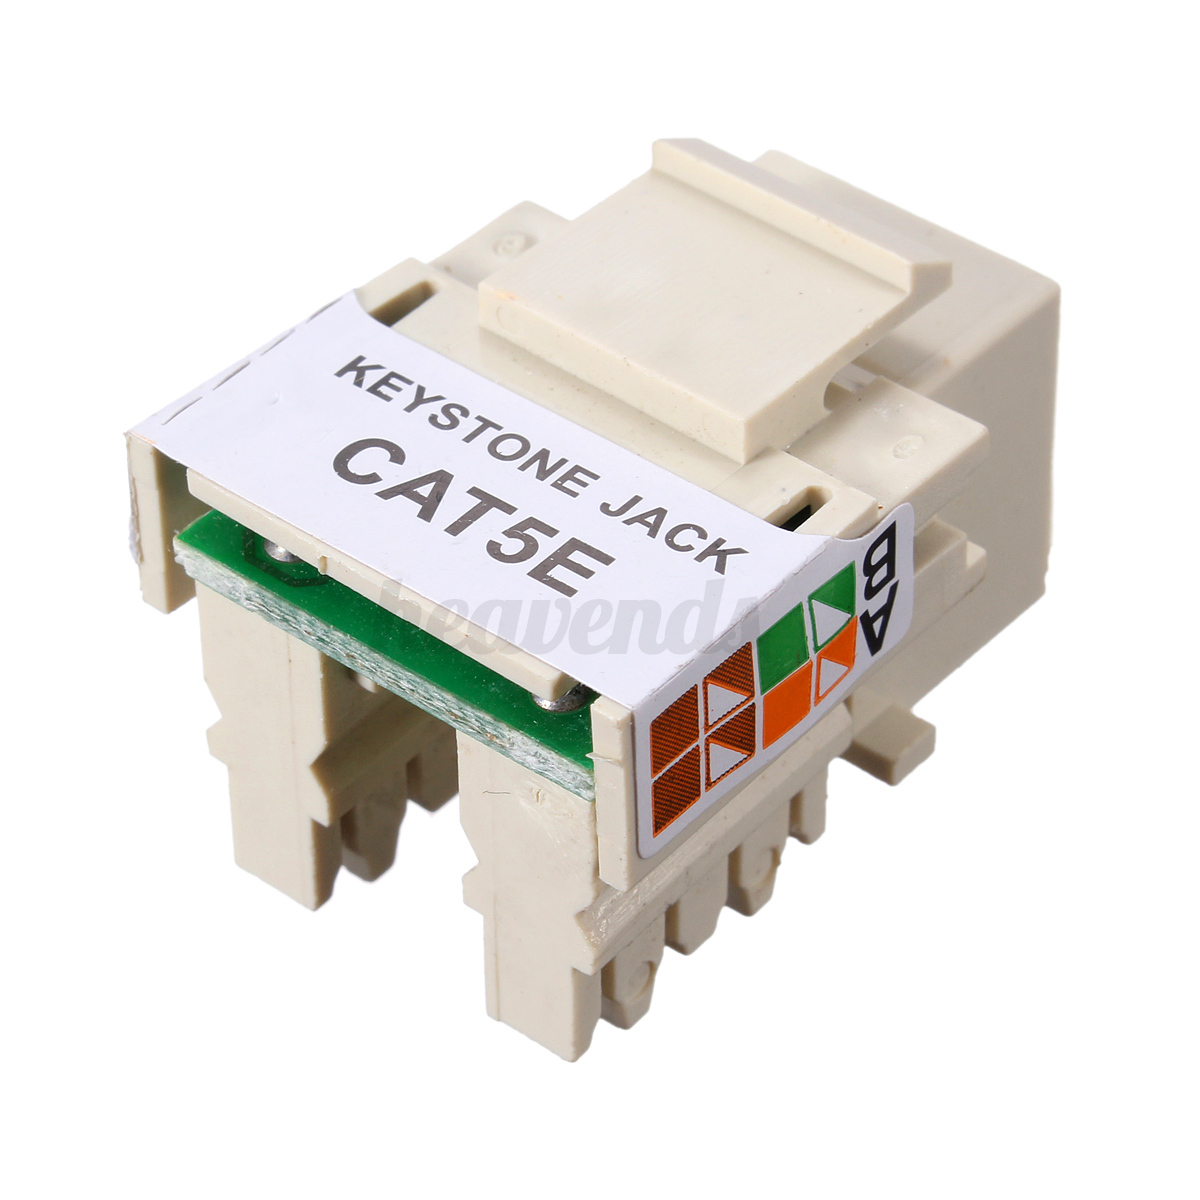 cat5 buchse two way light switch wiring diagram new zealand cat5e rj45 ethernet adapter wand patch keystone